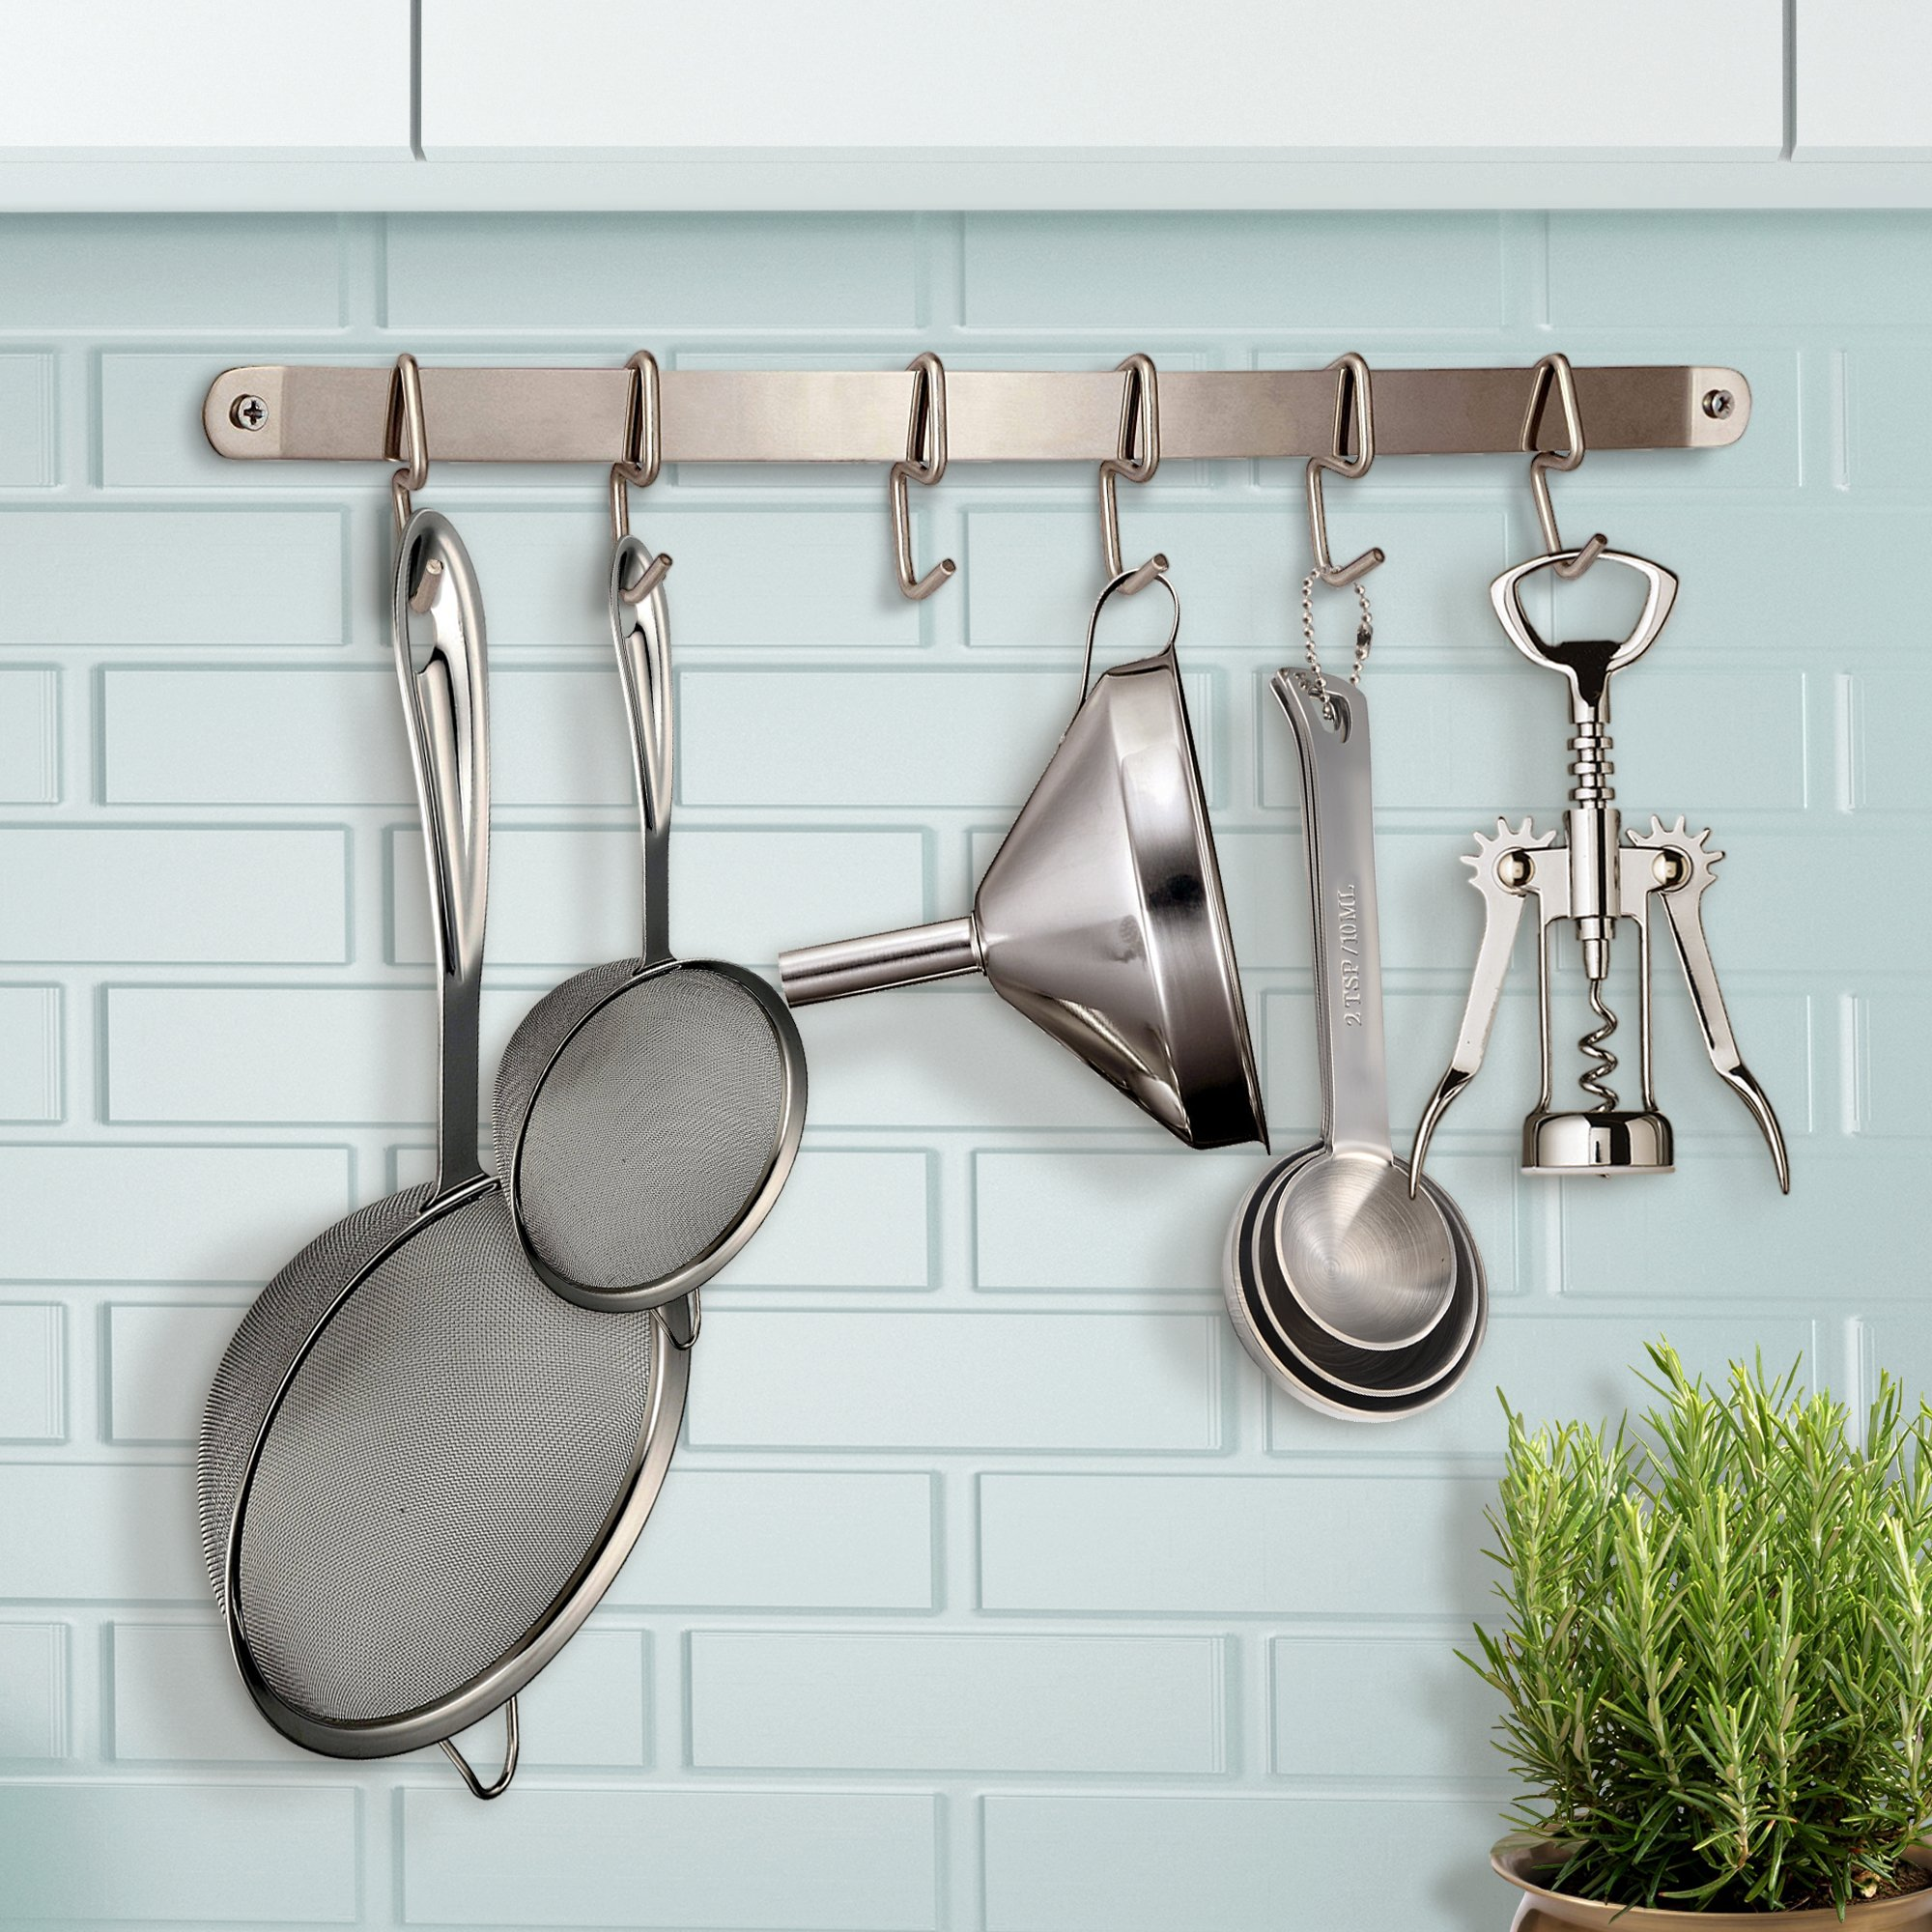 Pro Chef Kitchen Tools Stainless Steel Utensil Hanging Rack 6 Hooks To Hold And Organize Utensils Pots Pans On Wall Mounted Hanger Bar